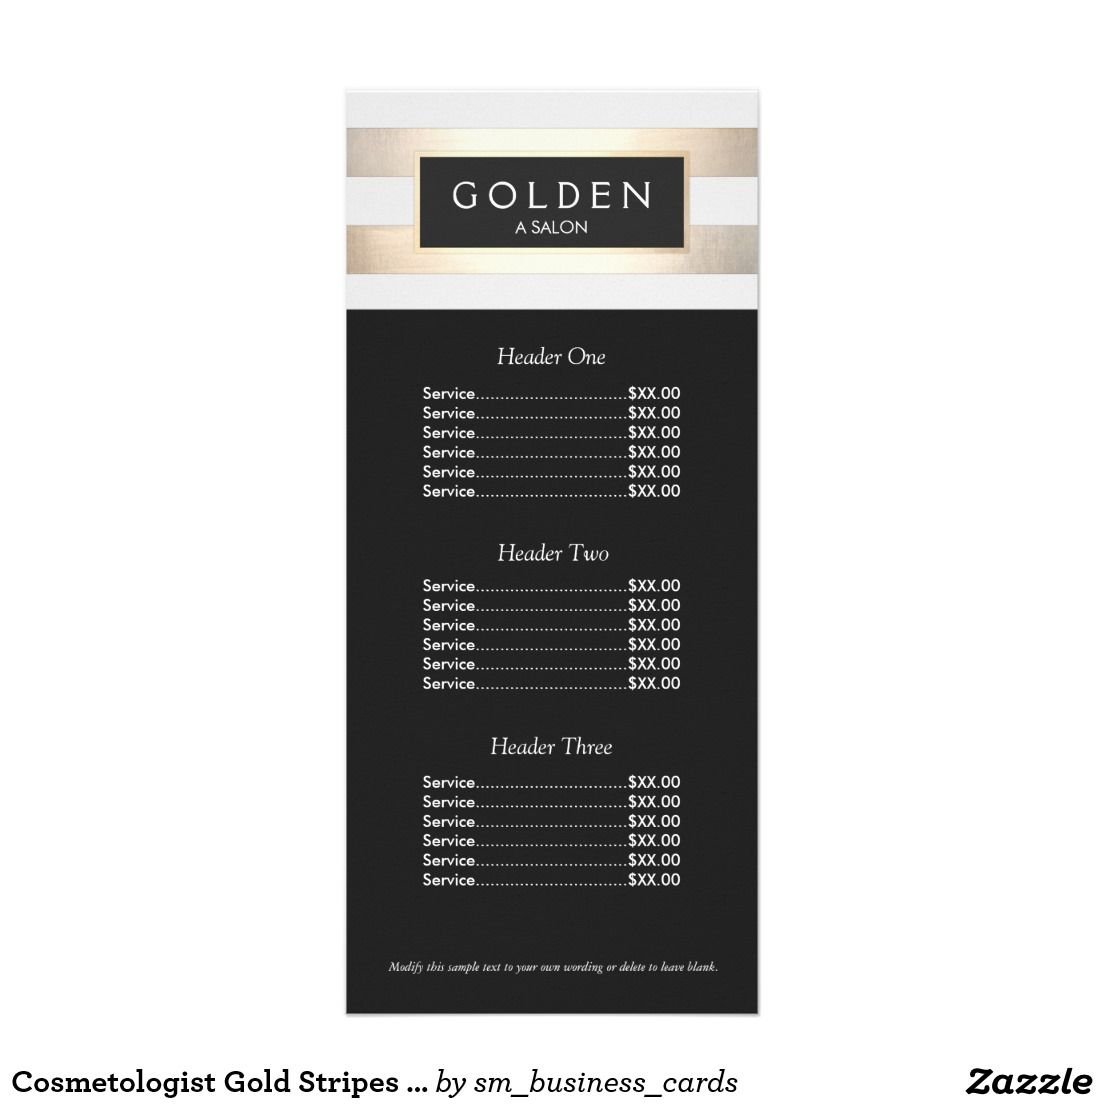 Beauty Salon Prices Cosmetologist Gold Stripes Hair Salon A Price Menu